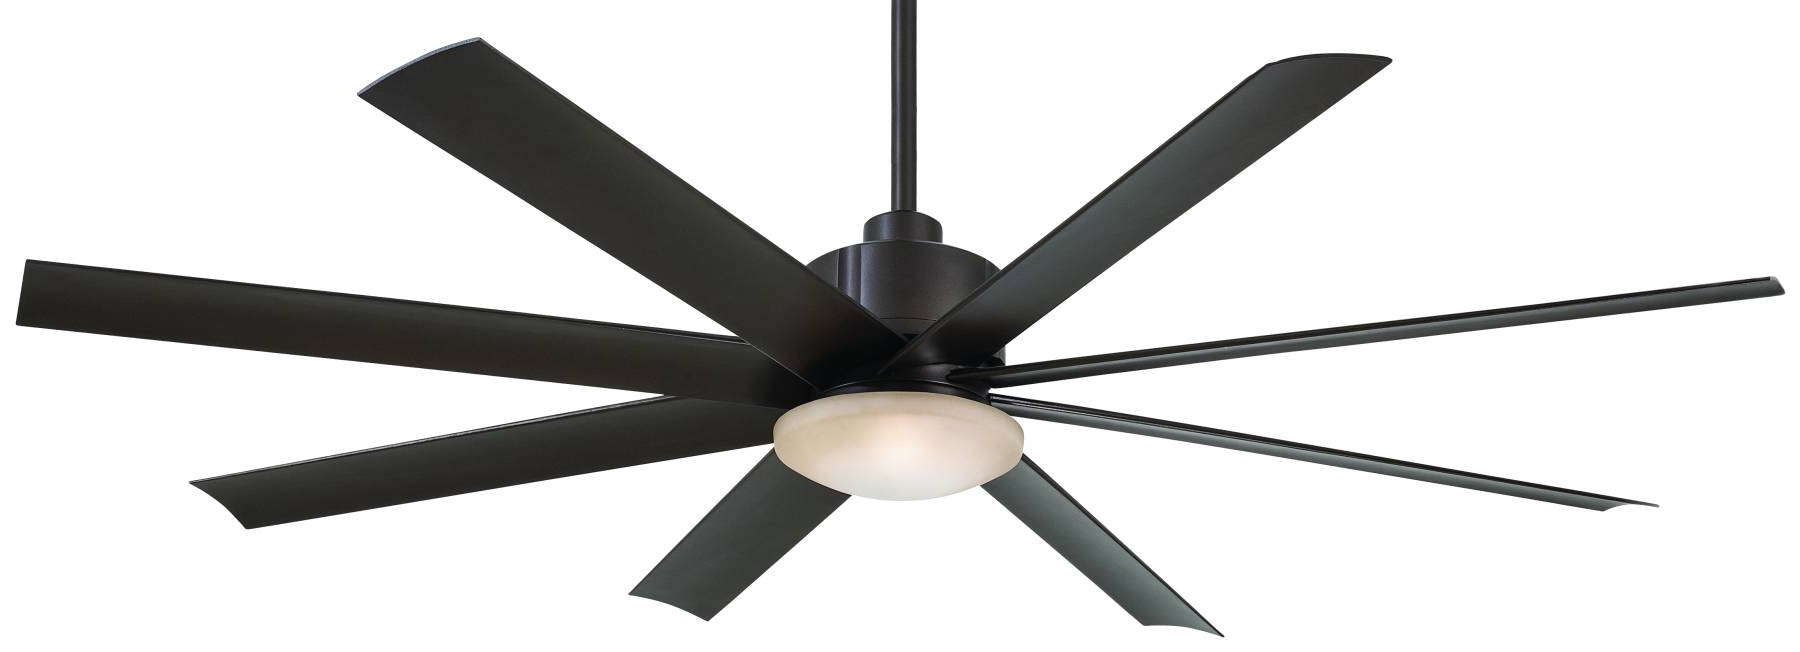 72 Inch Outdoor Ceiling Fans Within Famous 72 Inch Ceiling Fan With Light Modern Ceiling Design Outdoor Wood (View 7 of 20)